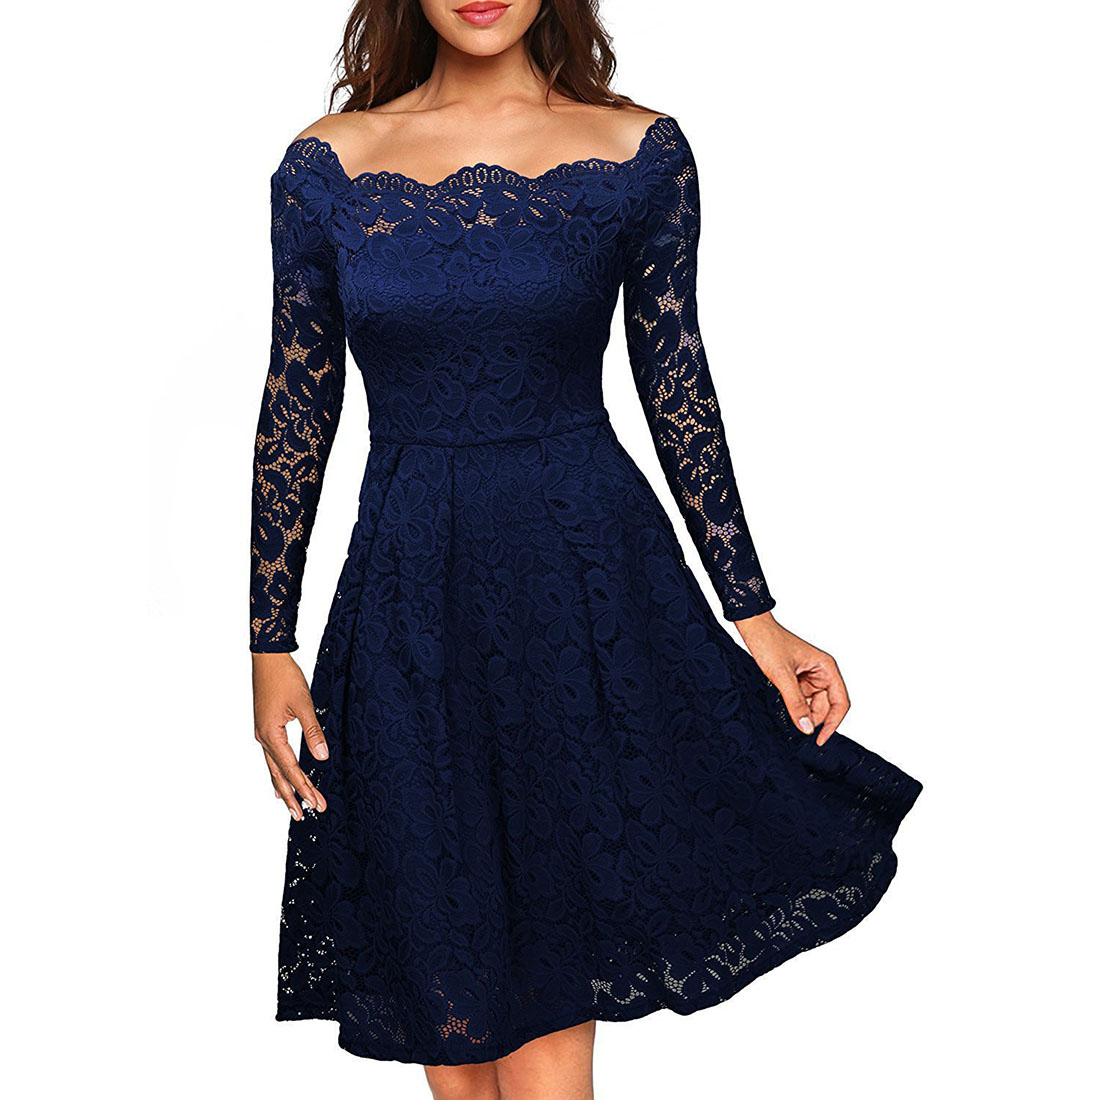 YJSFG HOUSE New Women's Elegant Lace Dresses Off Shoulder Lace Skater Midi Dress Evening Formal Party Dresses Plus Size Girls